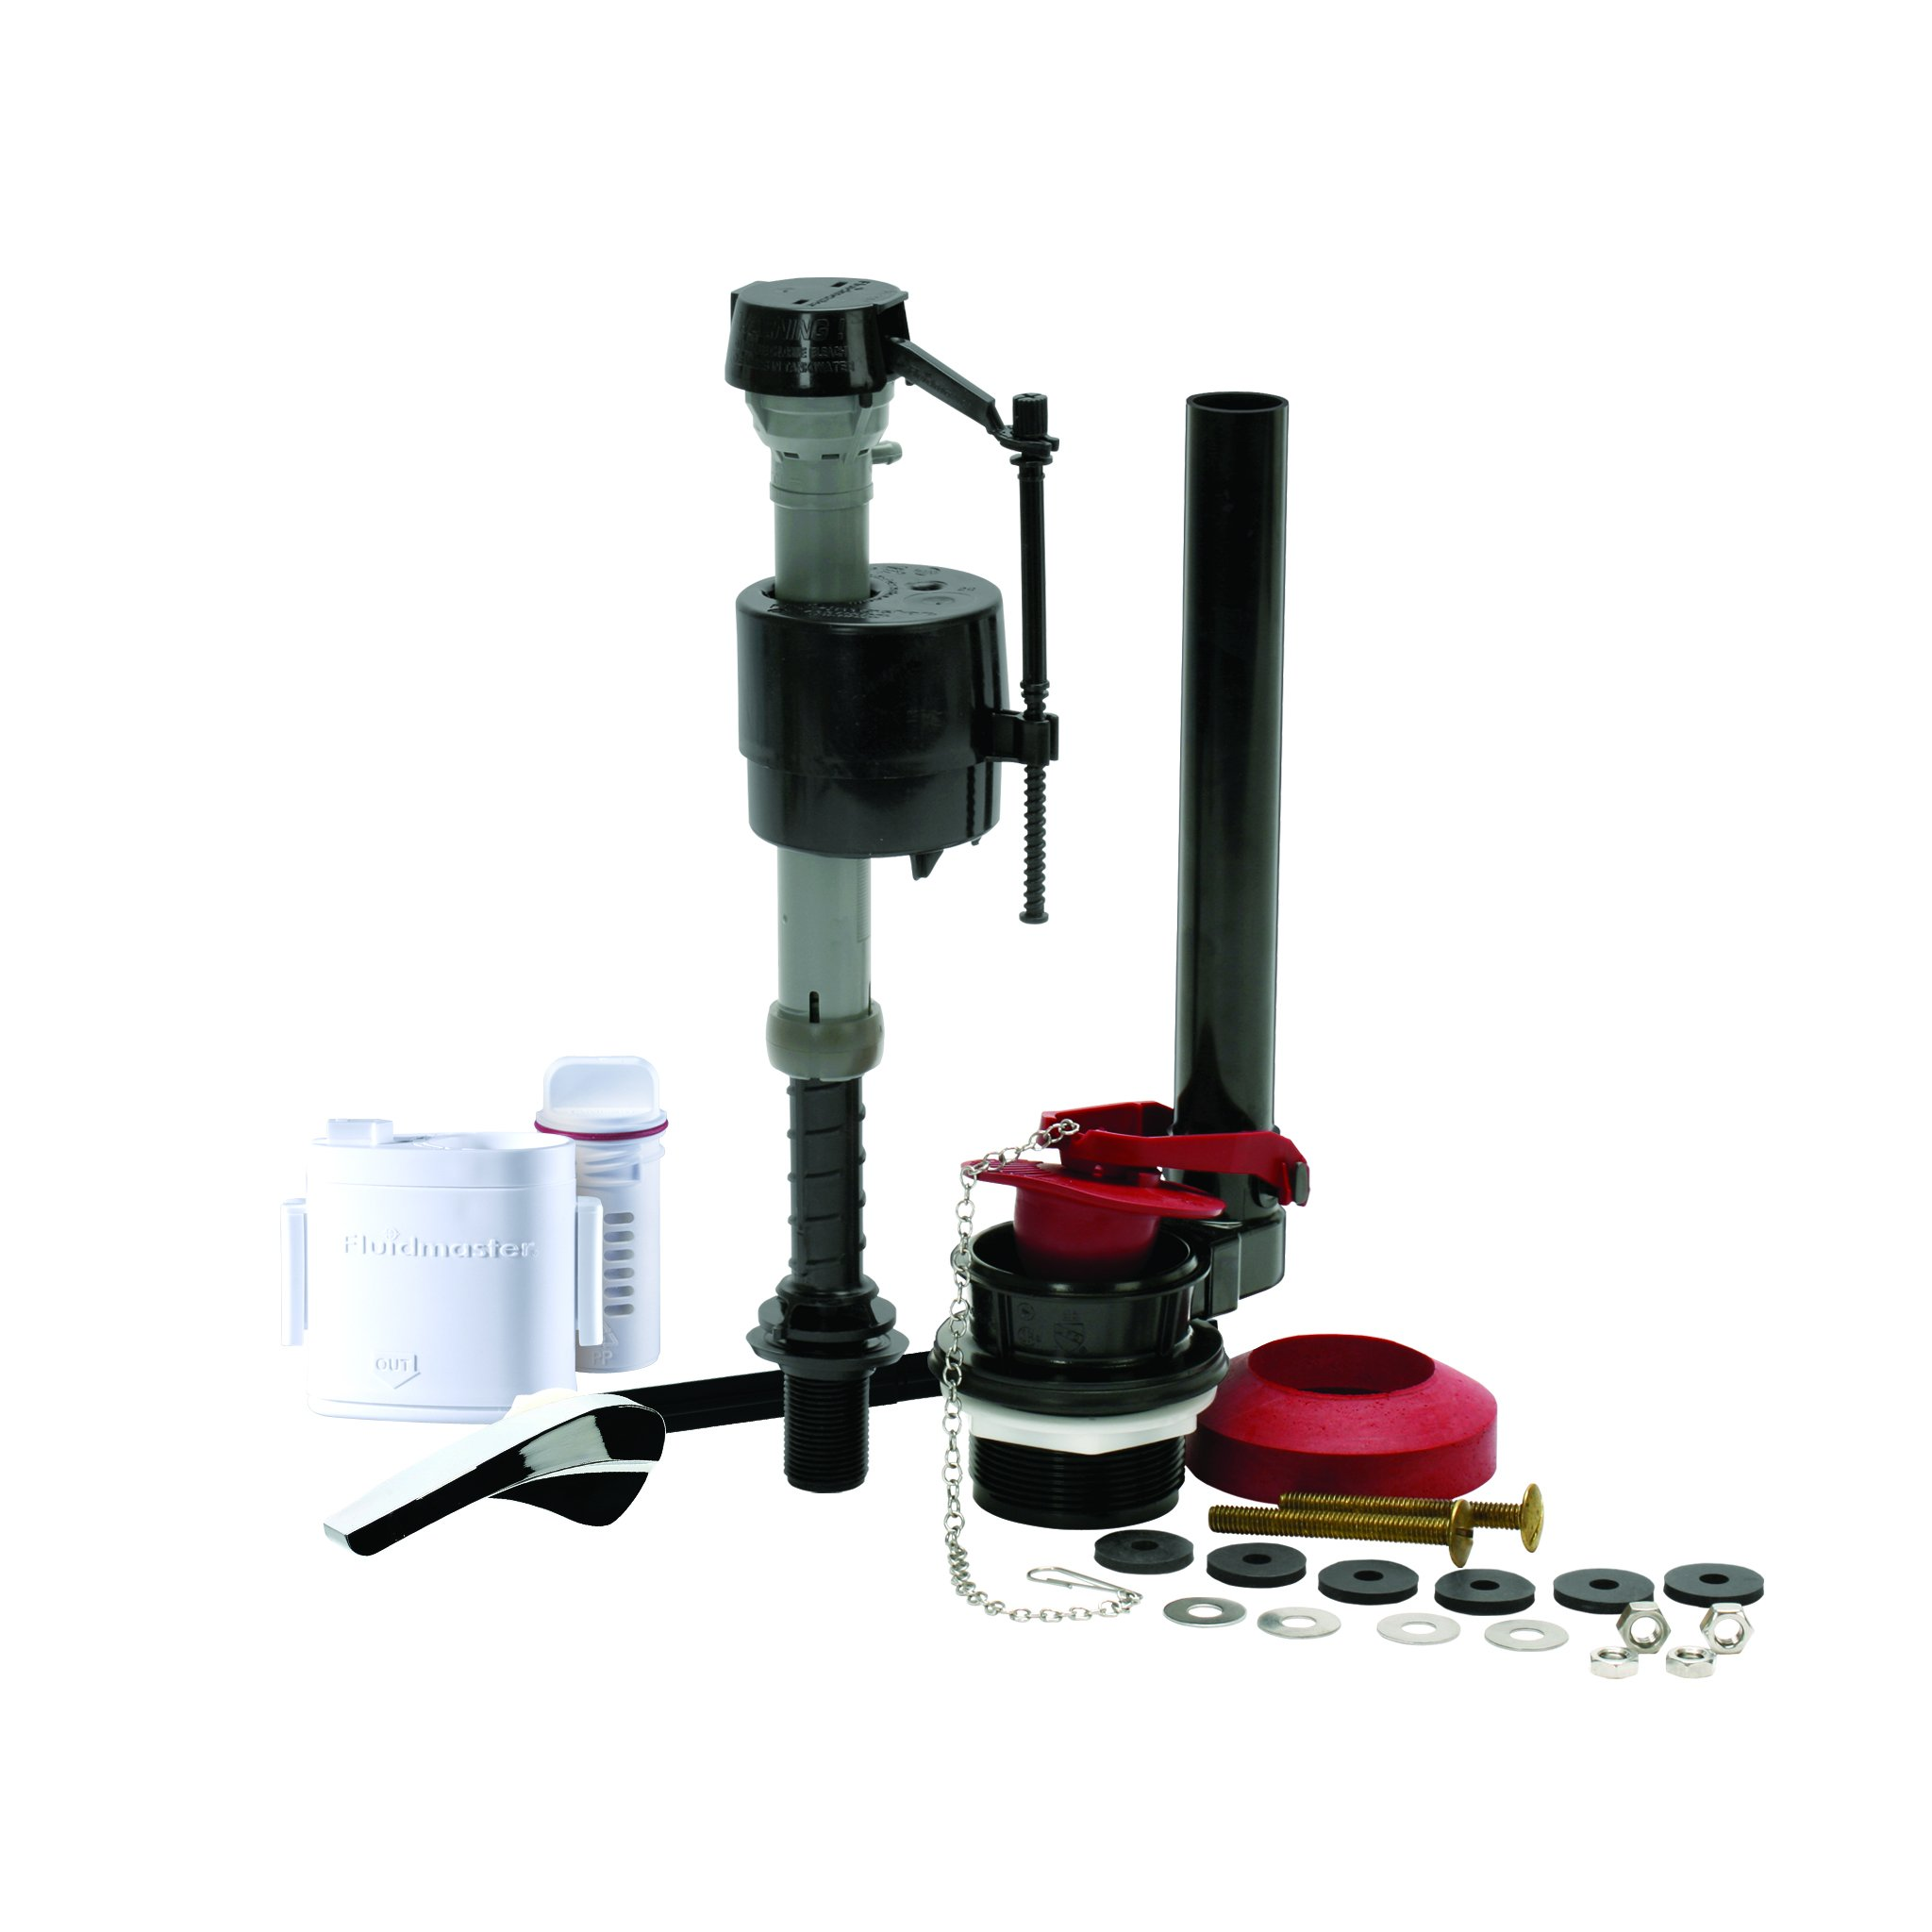 Fluidmaster 400AKFS Universal All-In-One Toilet Repair Kit With Flush 'n Sparkle Automatic Toilet Cleaning System, For 2-Inch Flush Valve Toilets